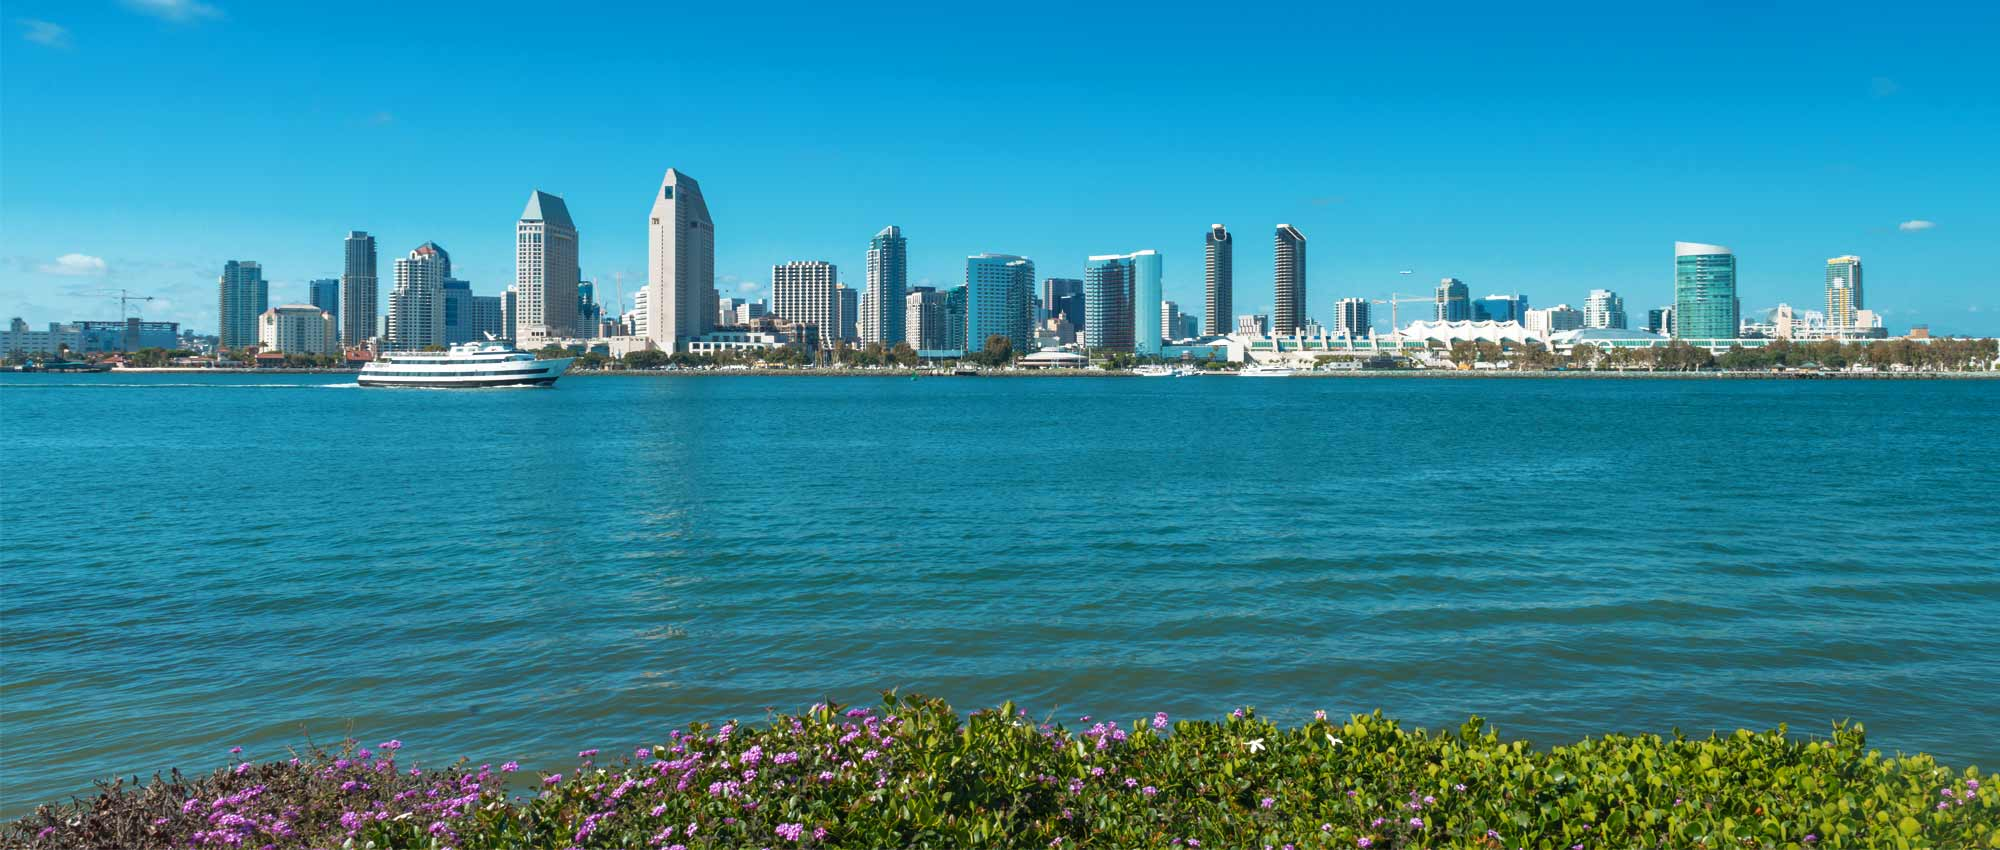 Image of San Diego skyline from Coronado